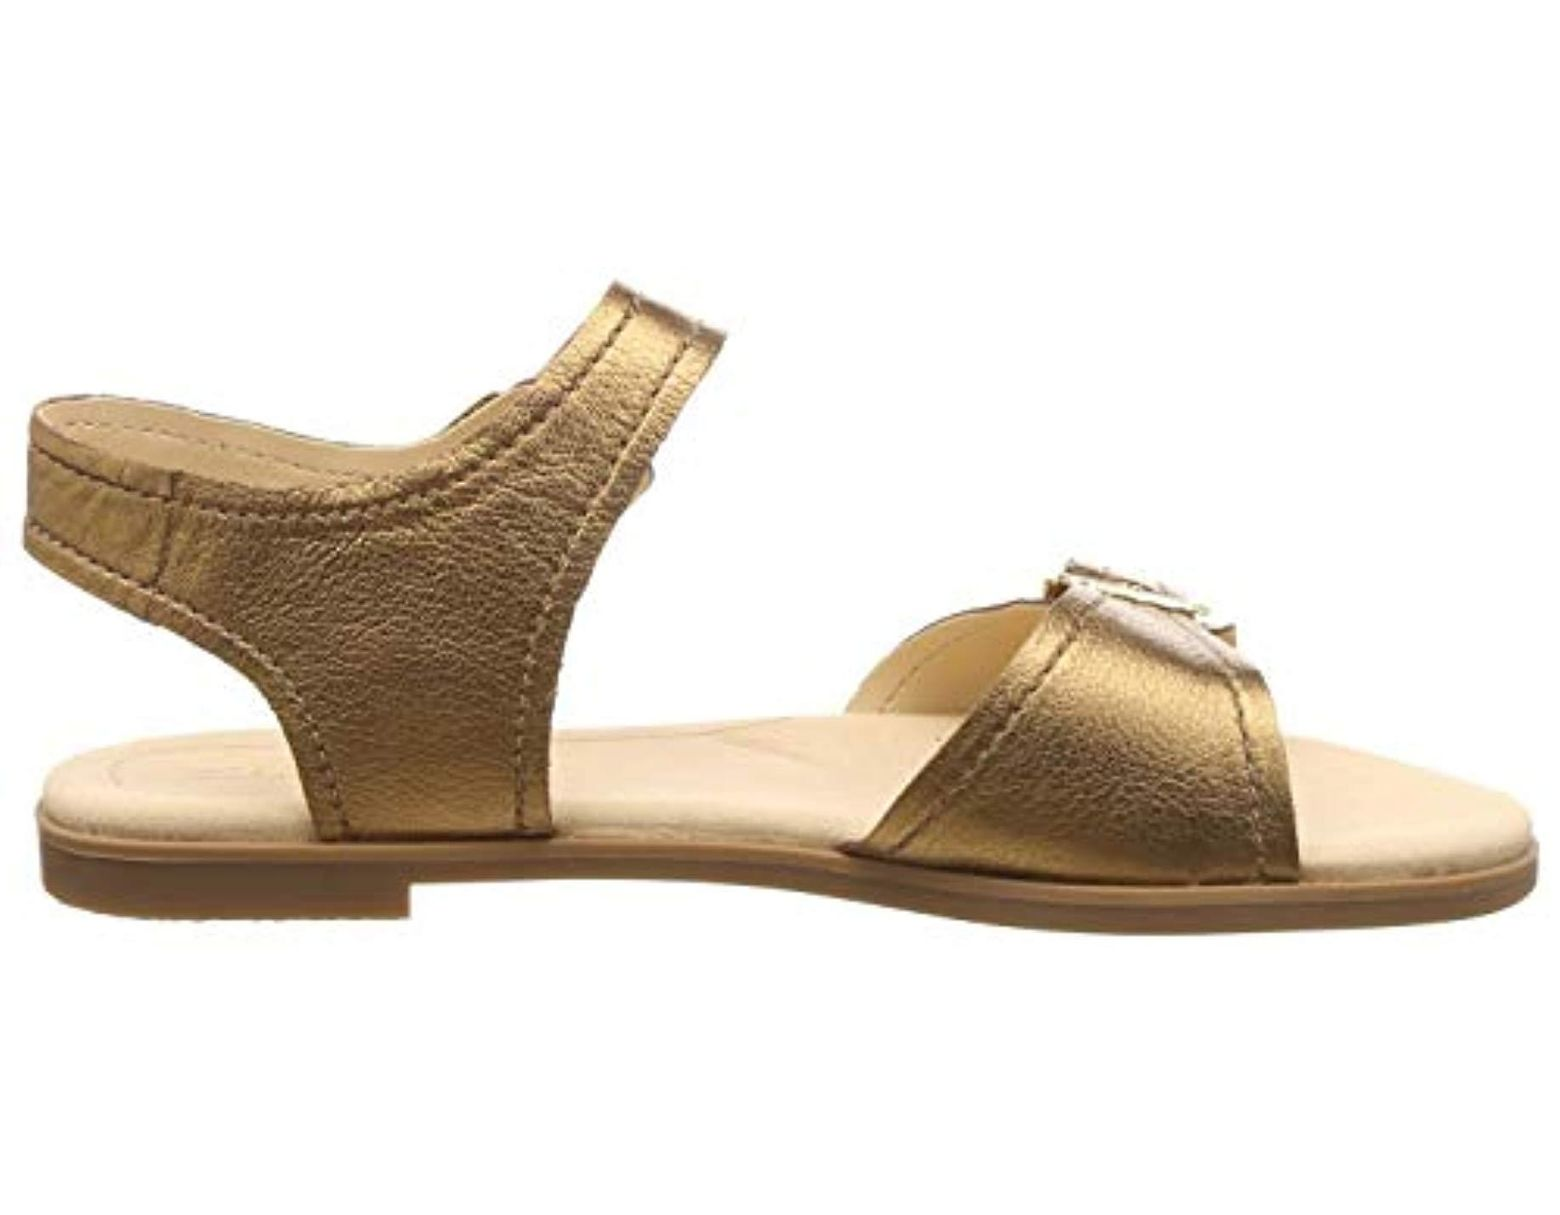 2f8e06be Clarks Bay Primrose Ankle Strap Sandals in Metallic - Lyst